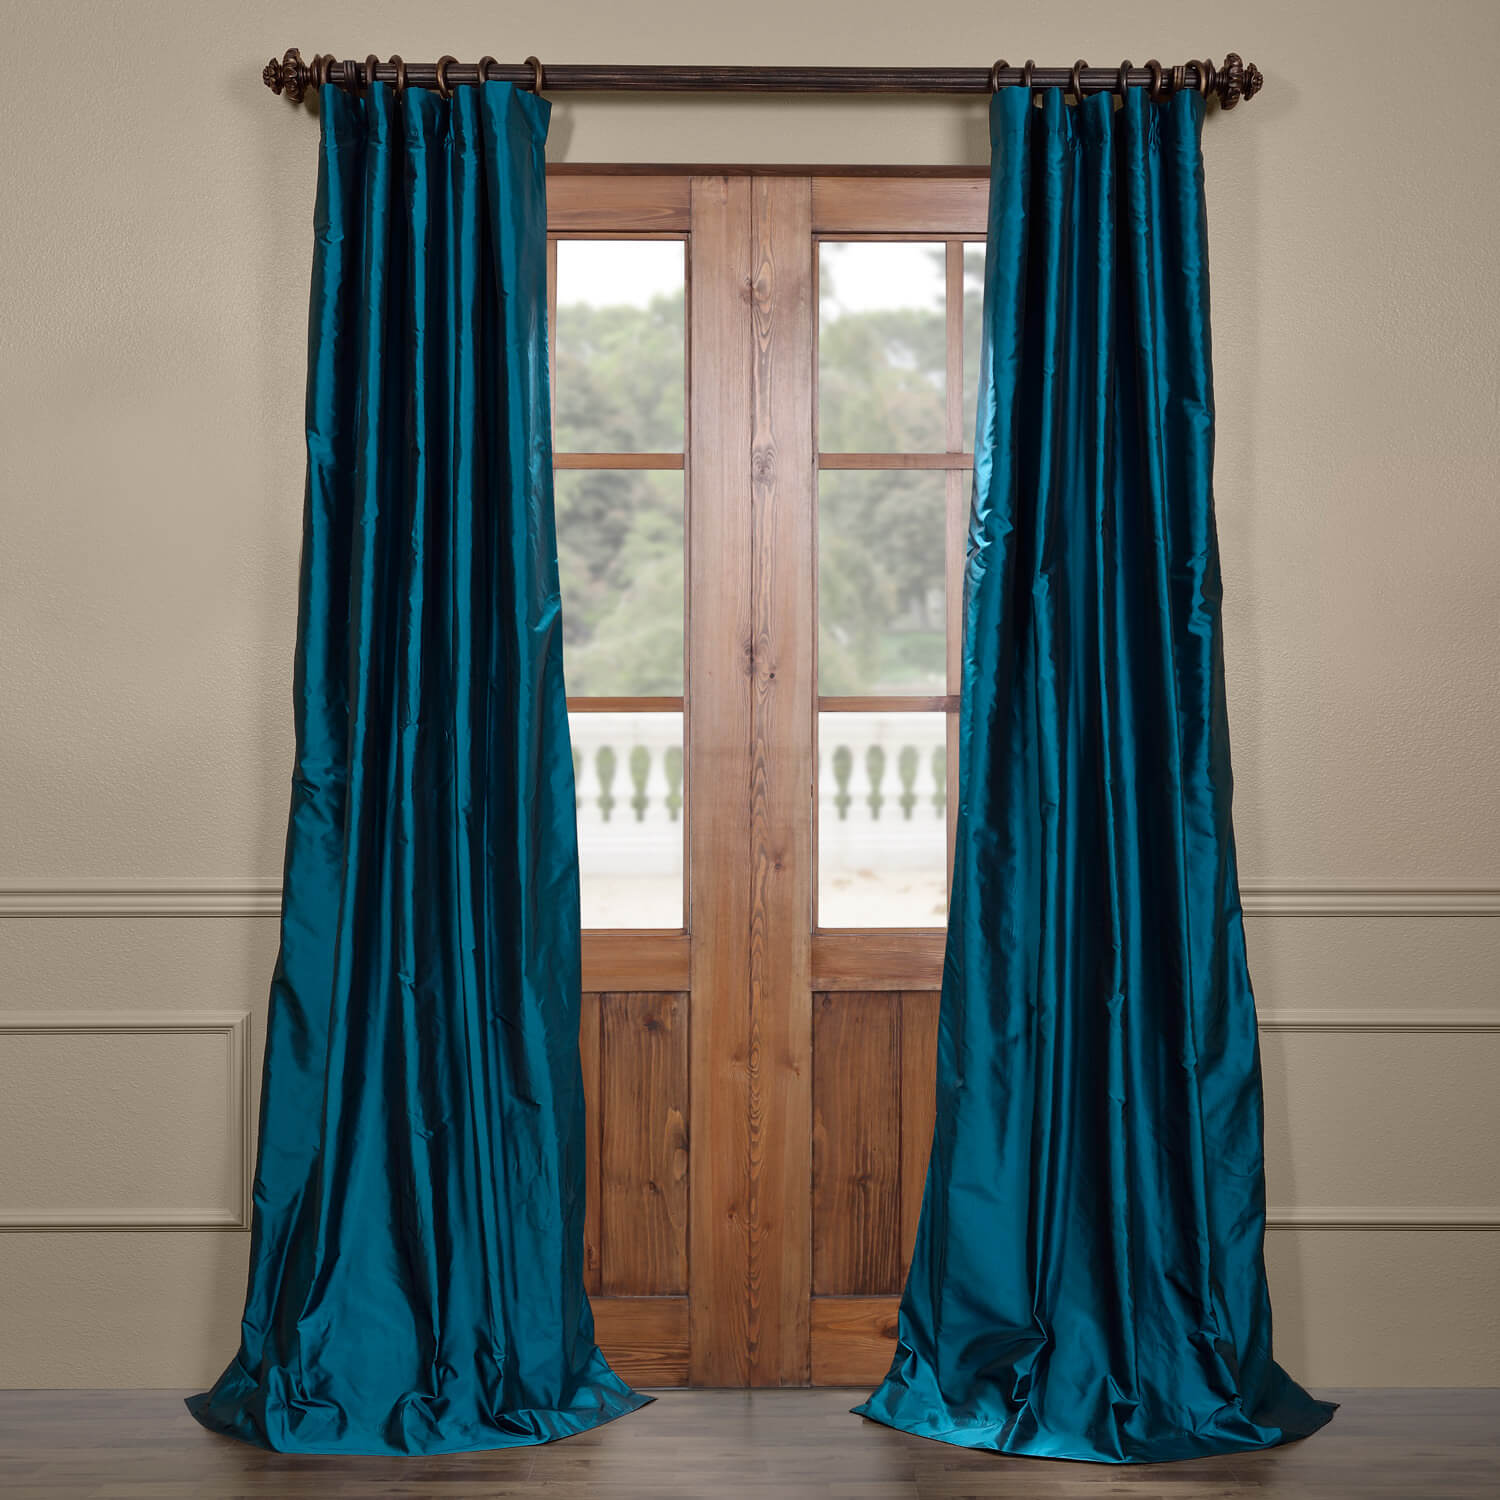 Teal drapes curtains